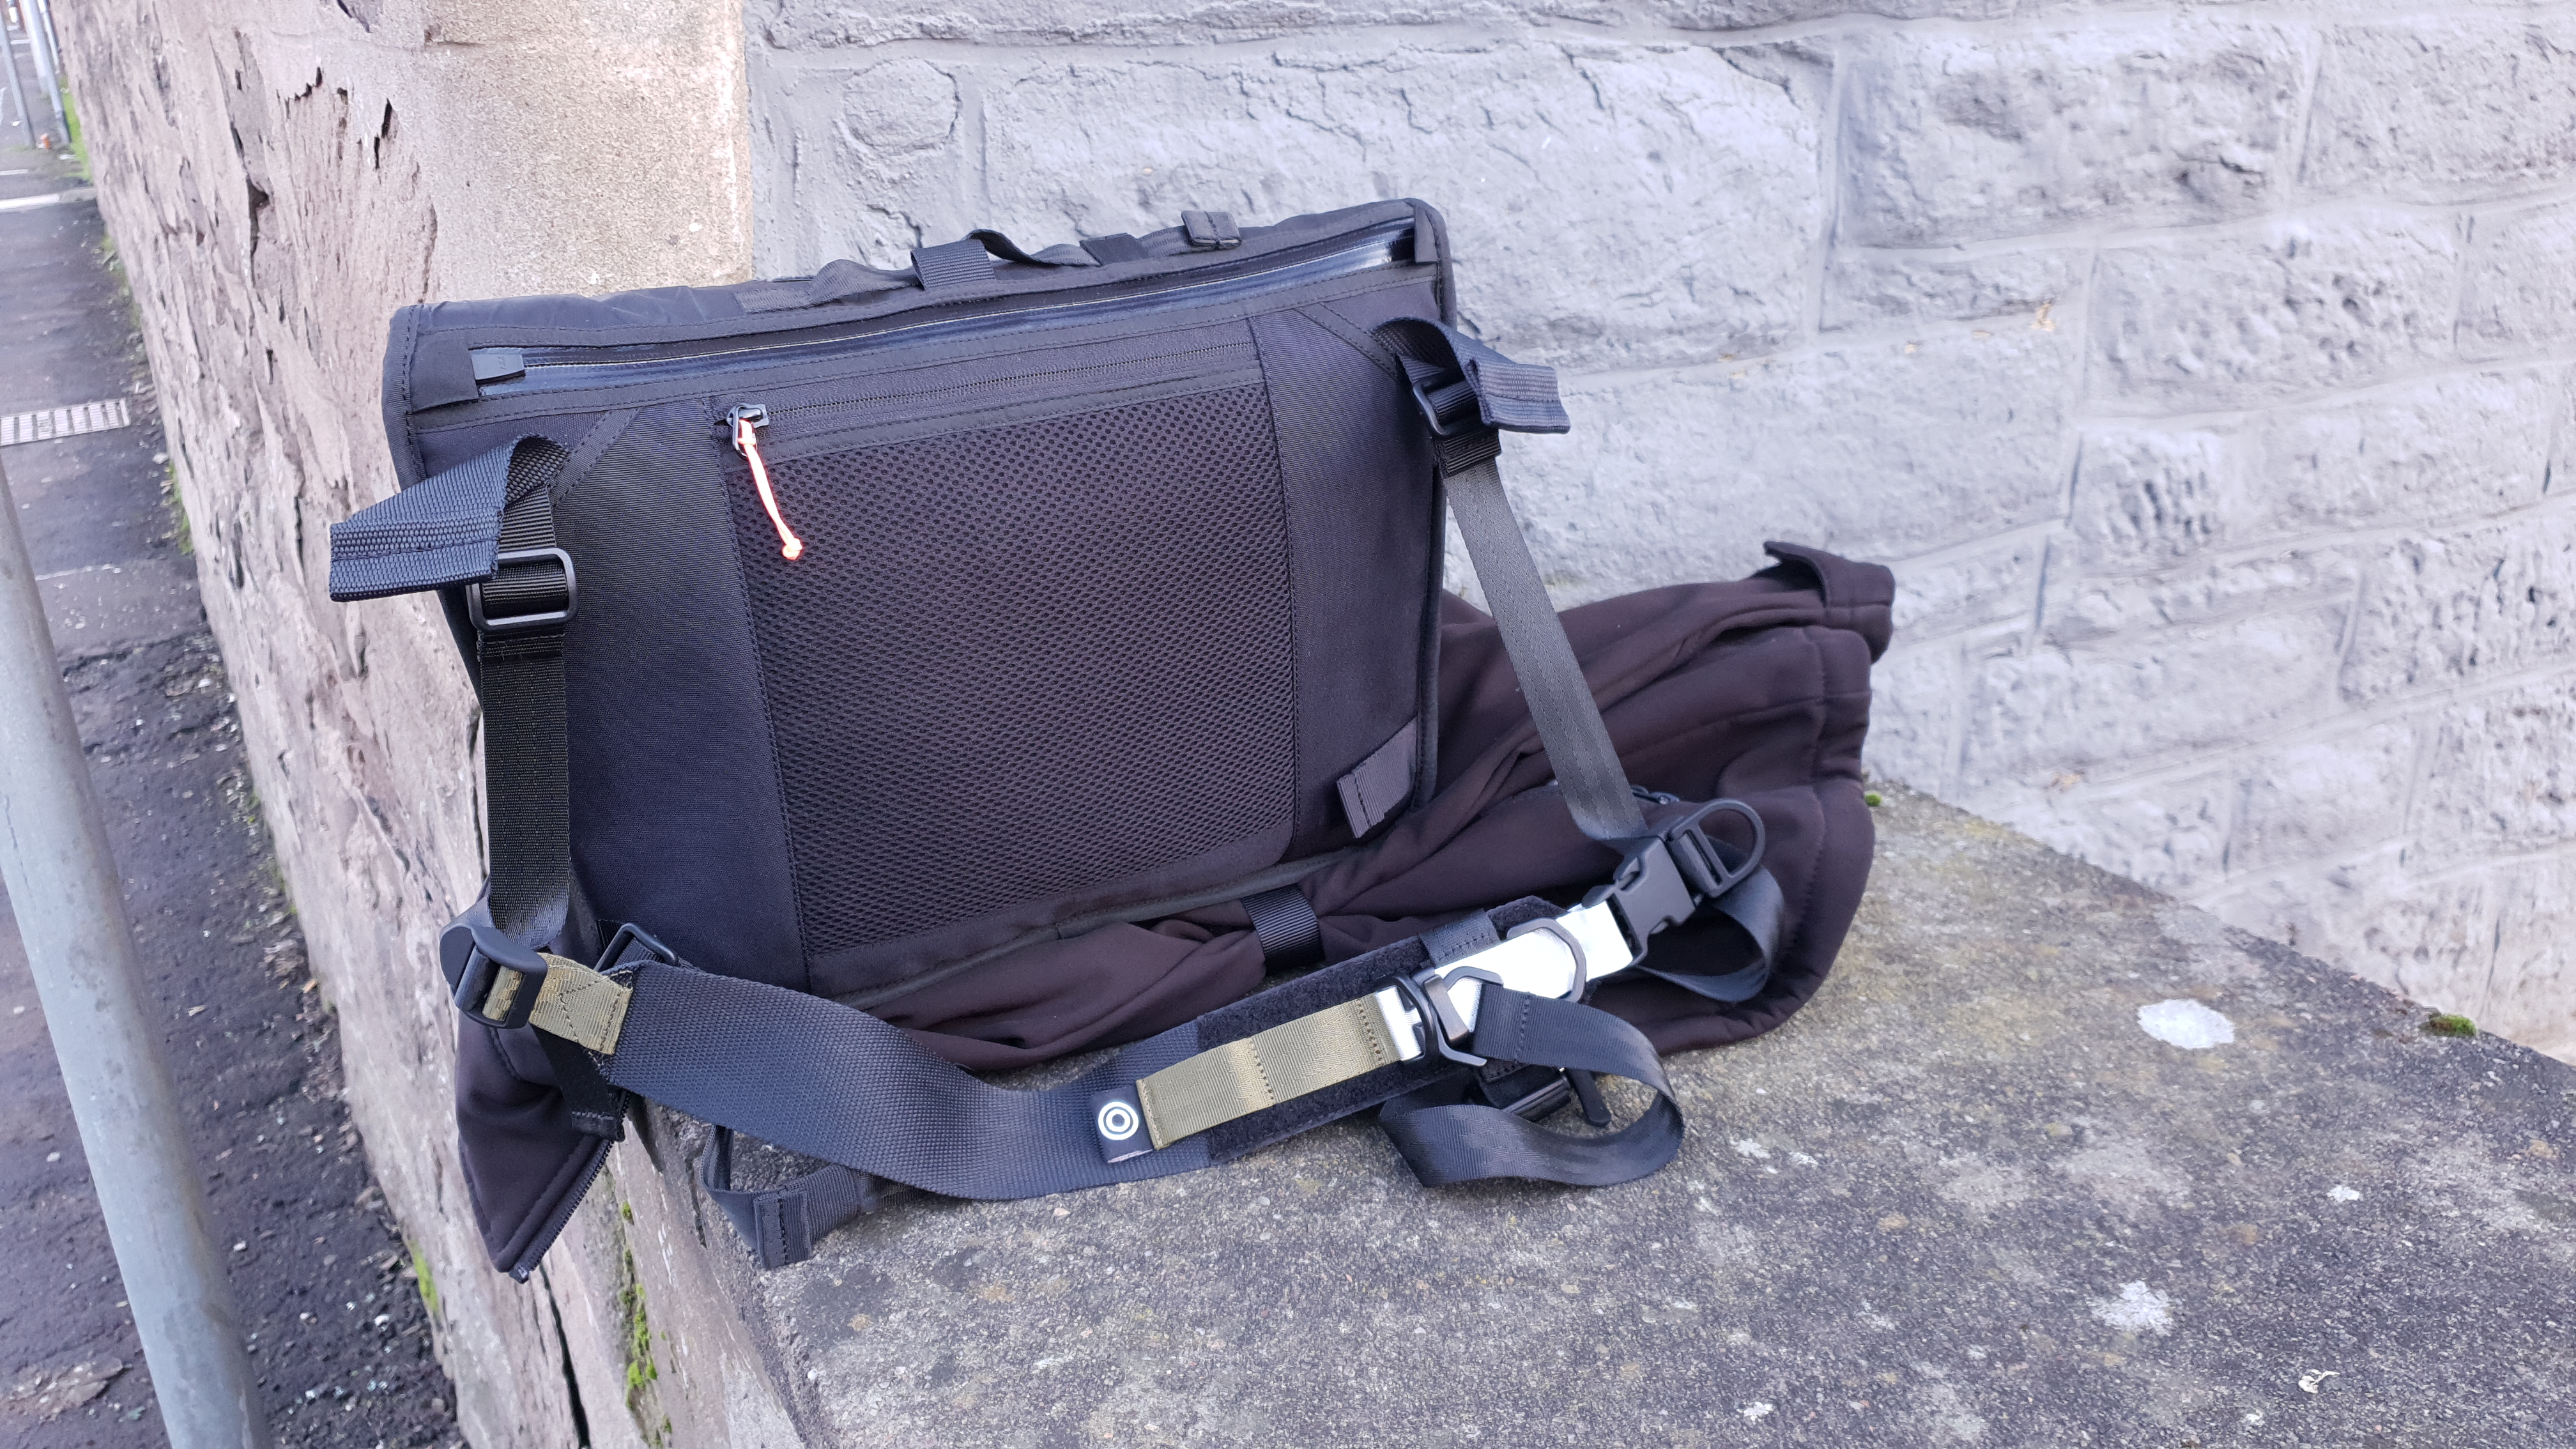 Orbit Gear R221 techwear sling bag review back panel padded overload straps softshell jacket